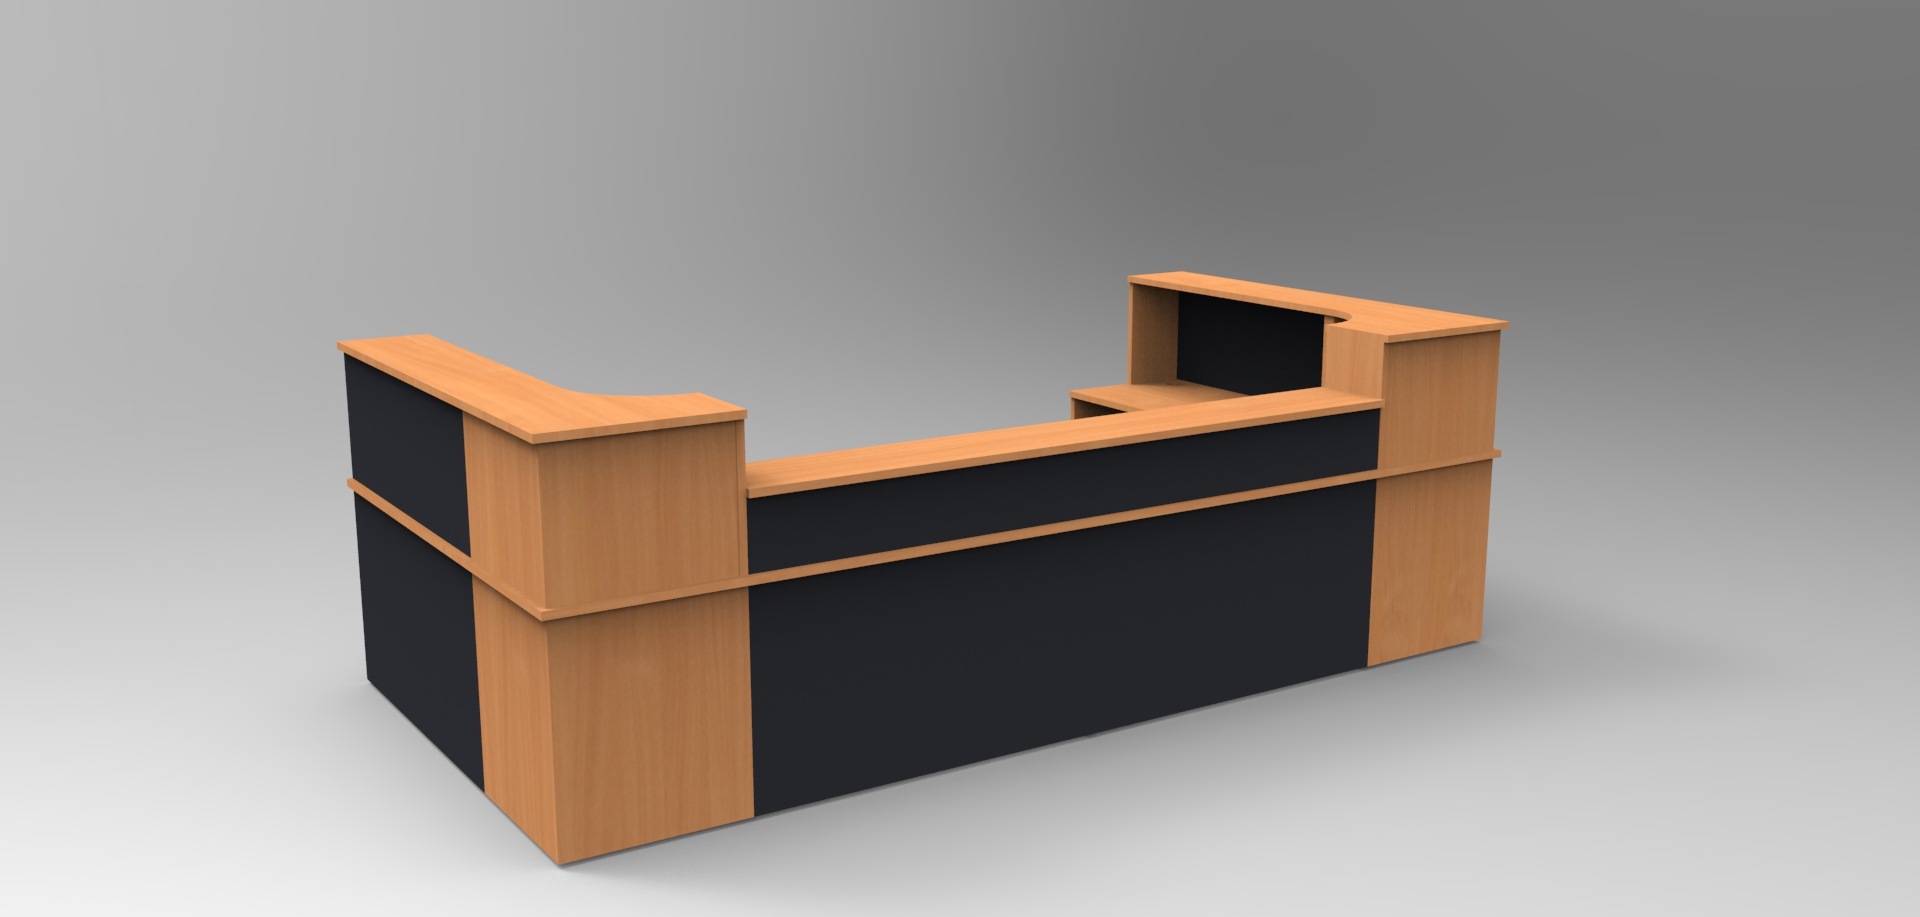 Image 33C - Classic reception desk - Beech & Graphite with a half height top unit4C -